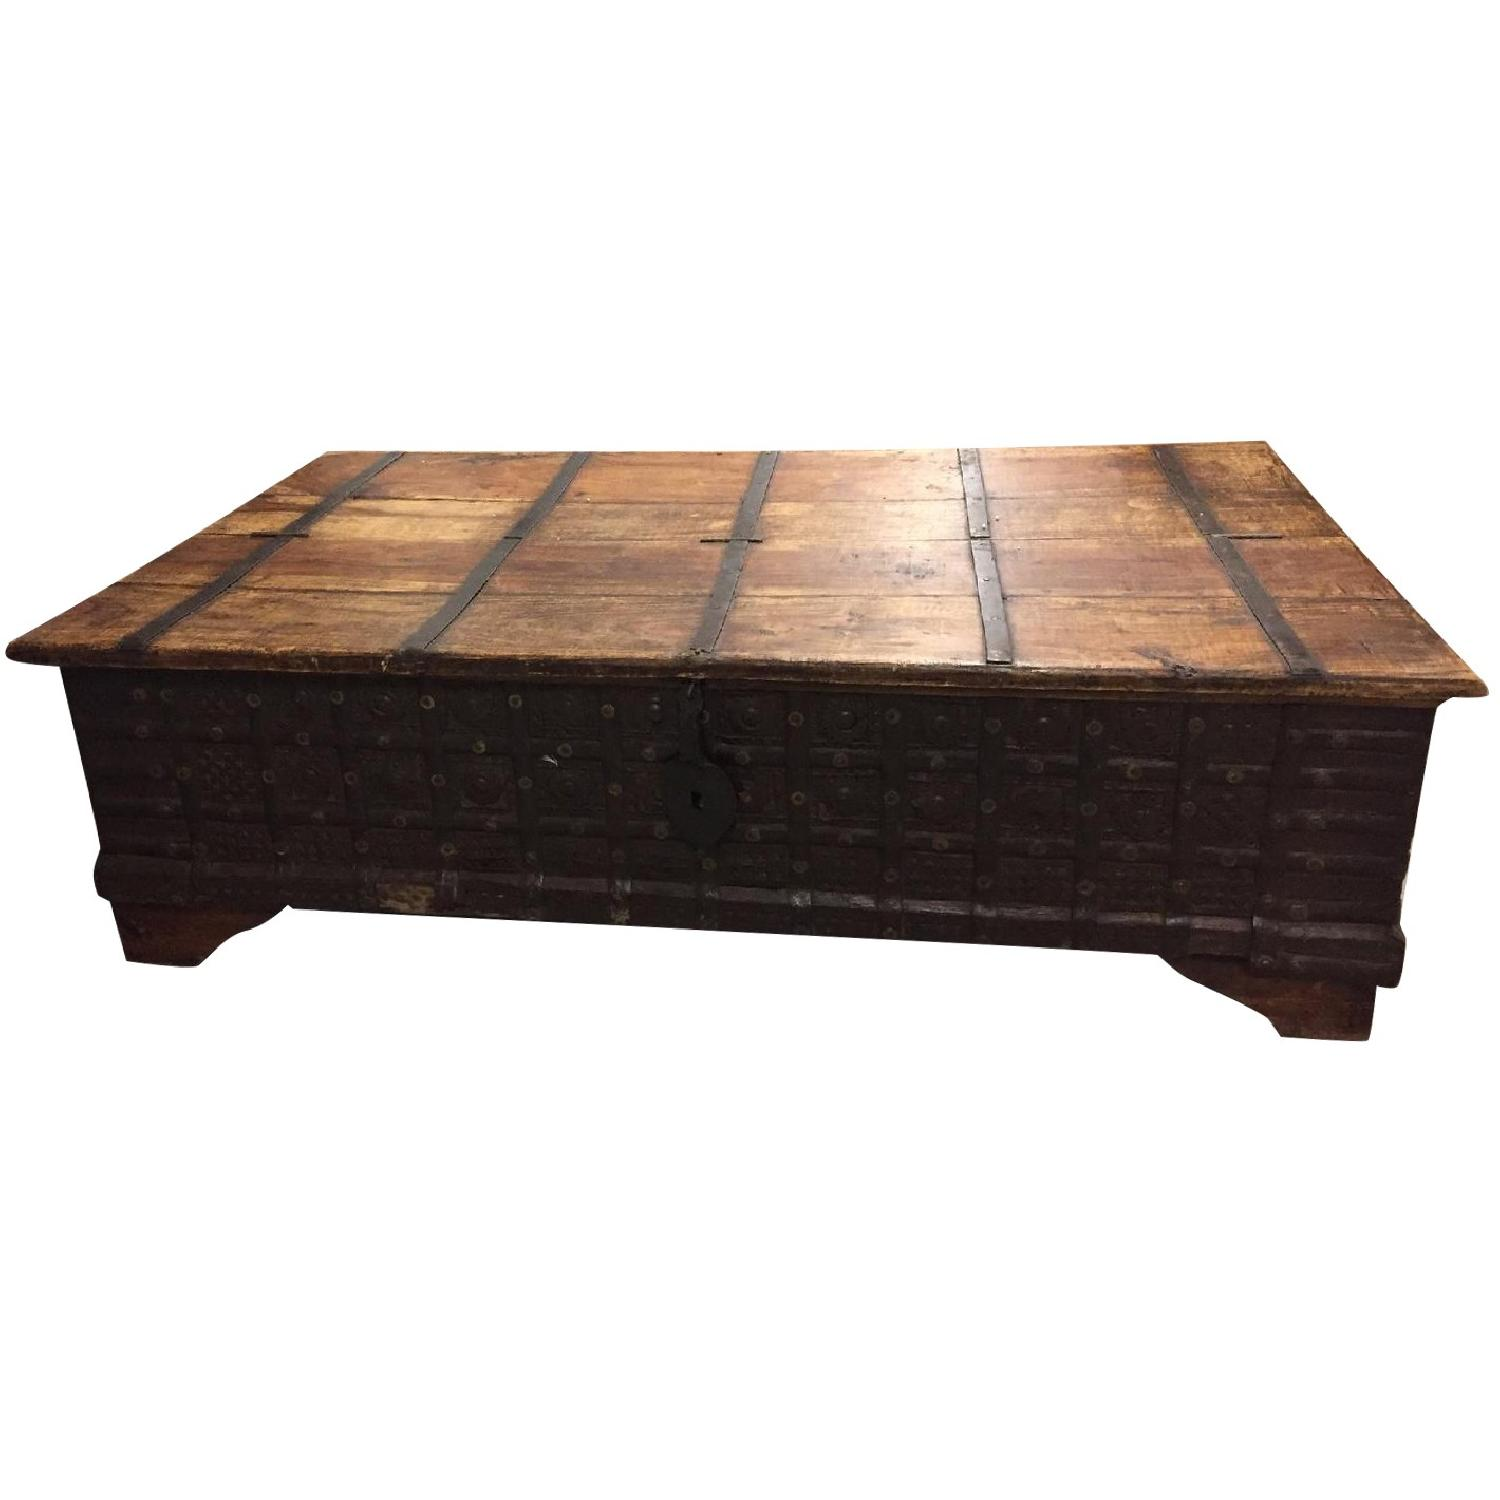 Vintage Import Coffee Table with Storage. - image-0